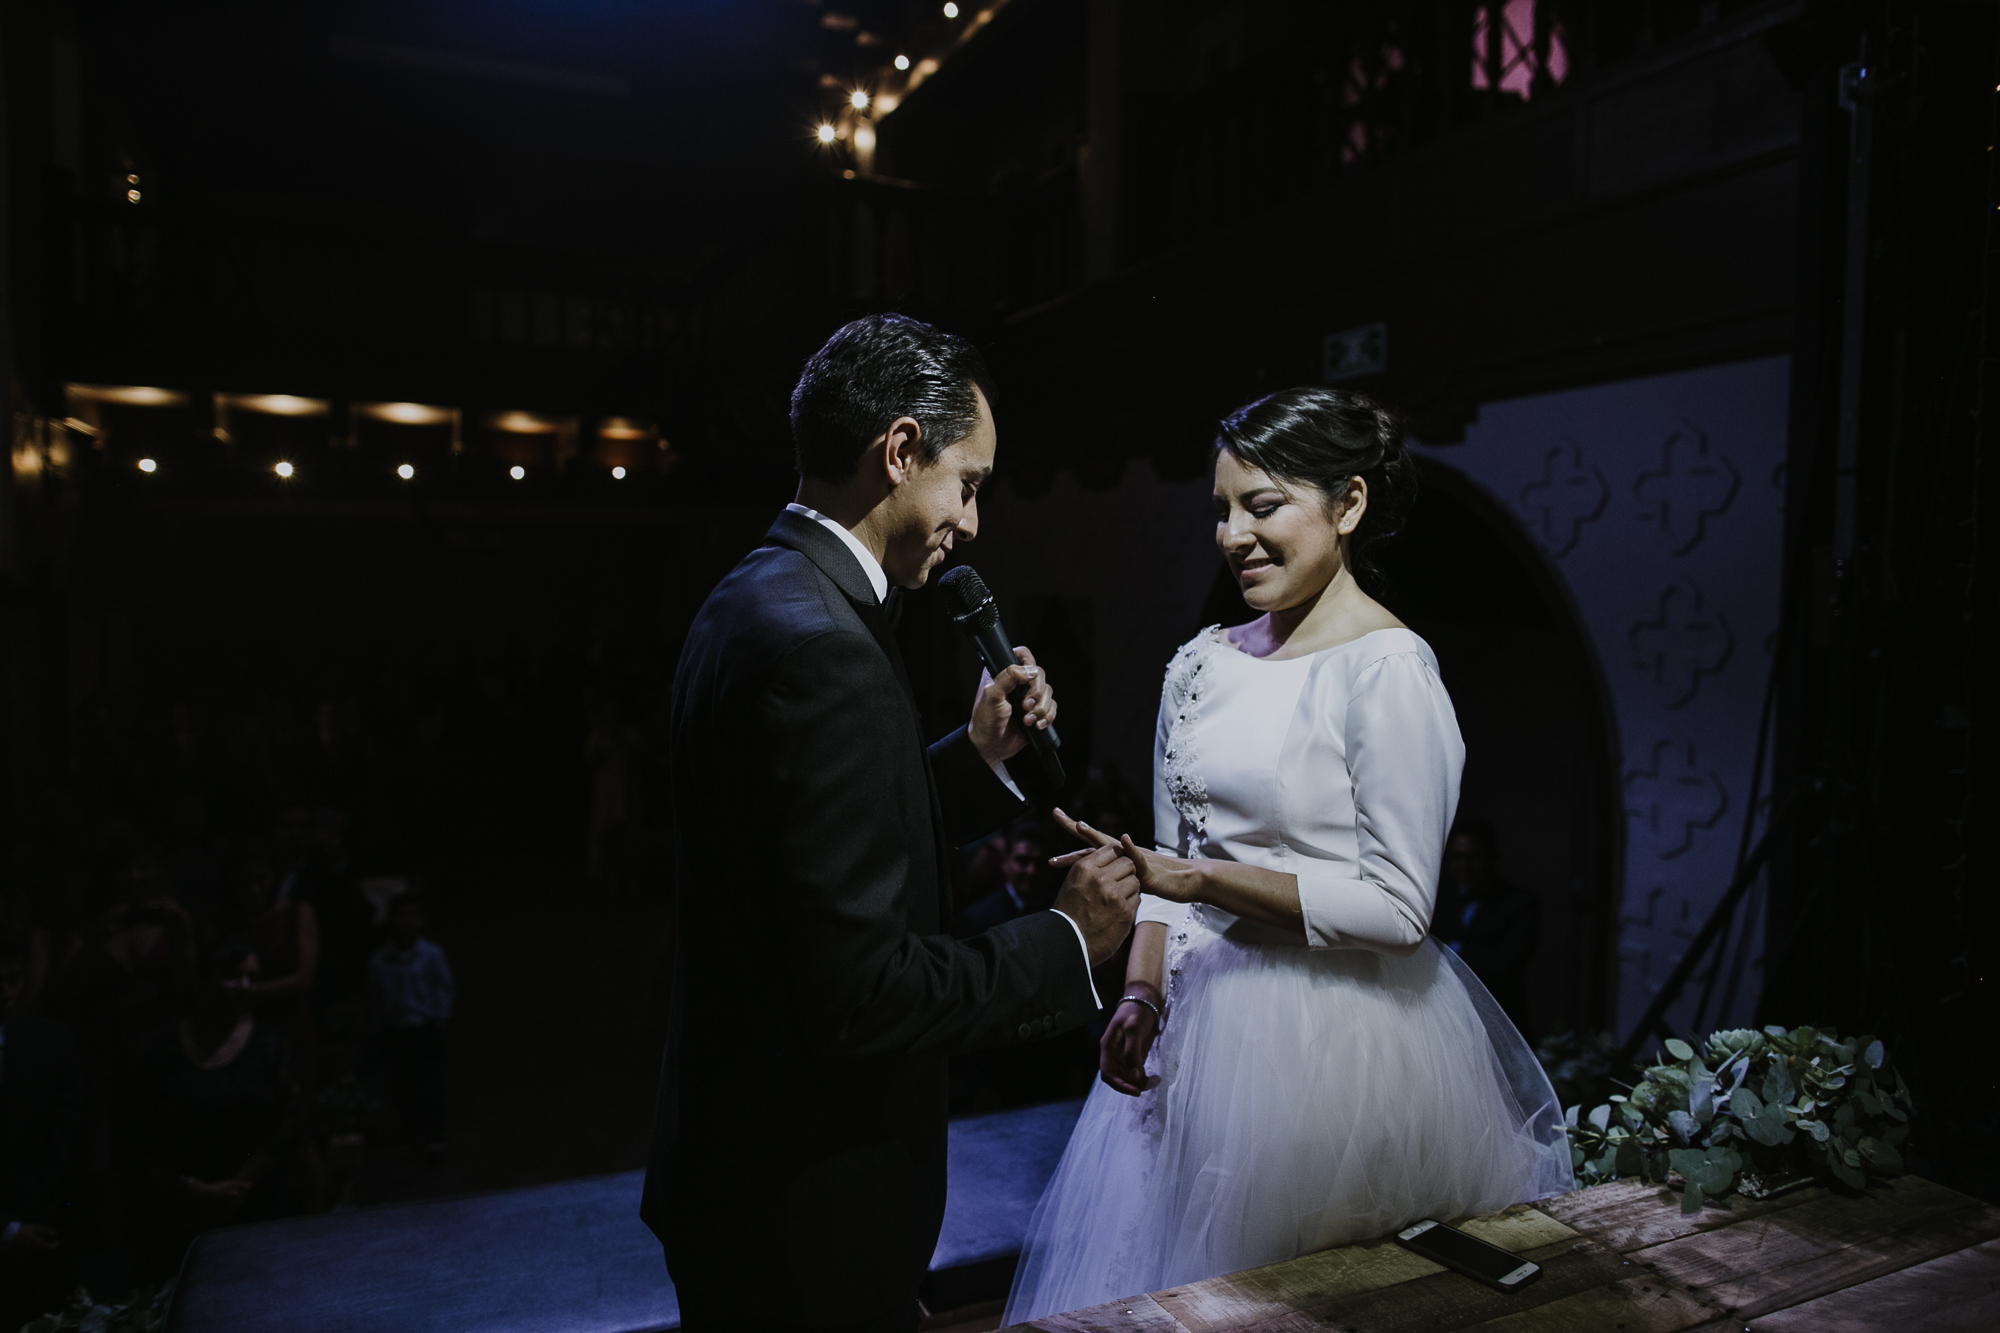 alfonso_flores_alternative_wedding_photographer_cdmx_roma_condesa_foro_indie_gissyotto-73.jpg